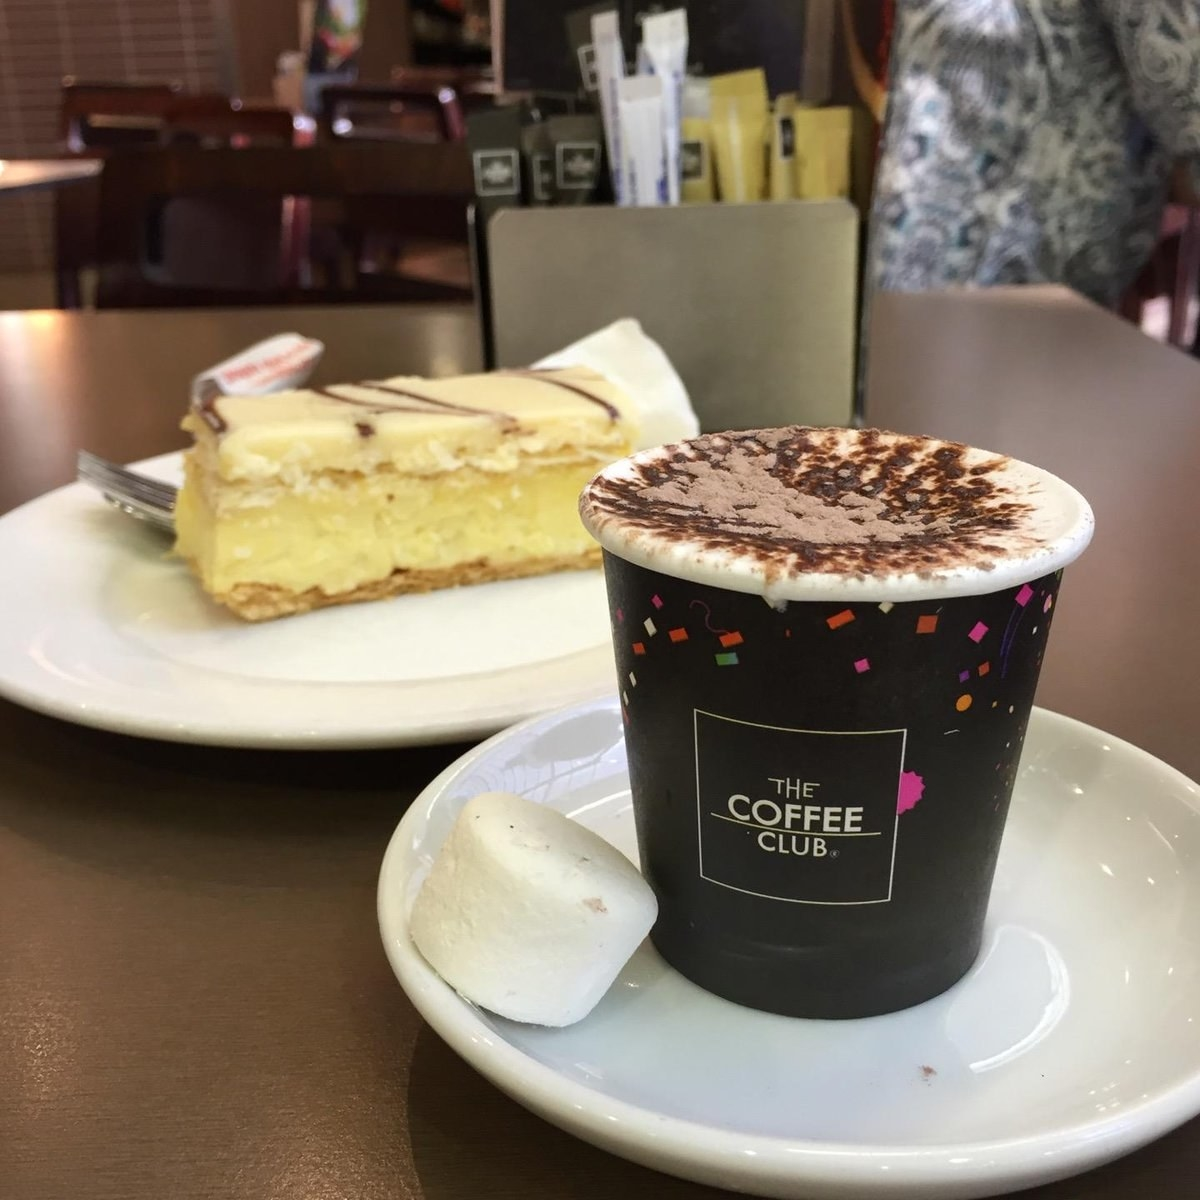 Christmas time means hanging out with the family, which means putting in quality time with Nan. And there's nothing grandmas love more than having a cappucino and sharing a vanilla slice down at the Coffee Club in the local shopping centre.